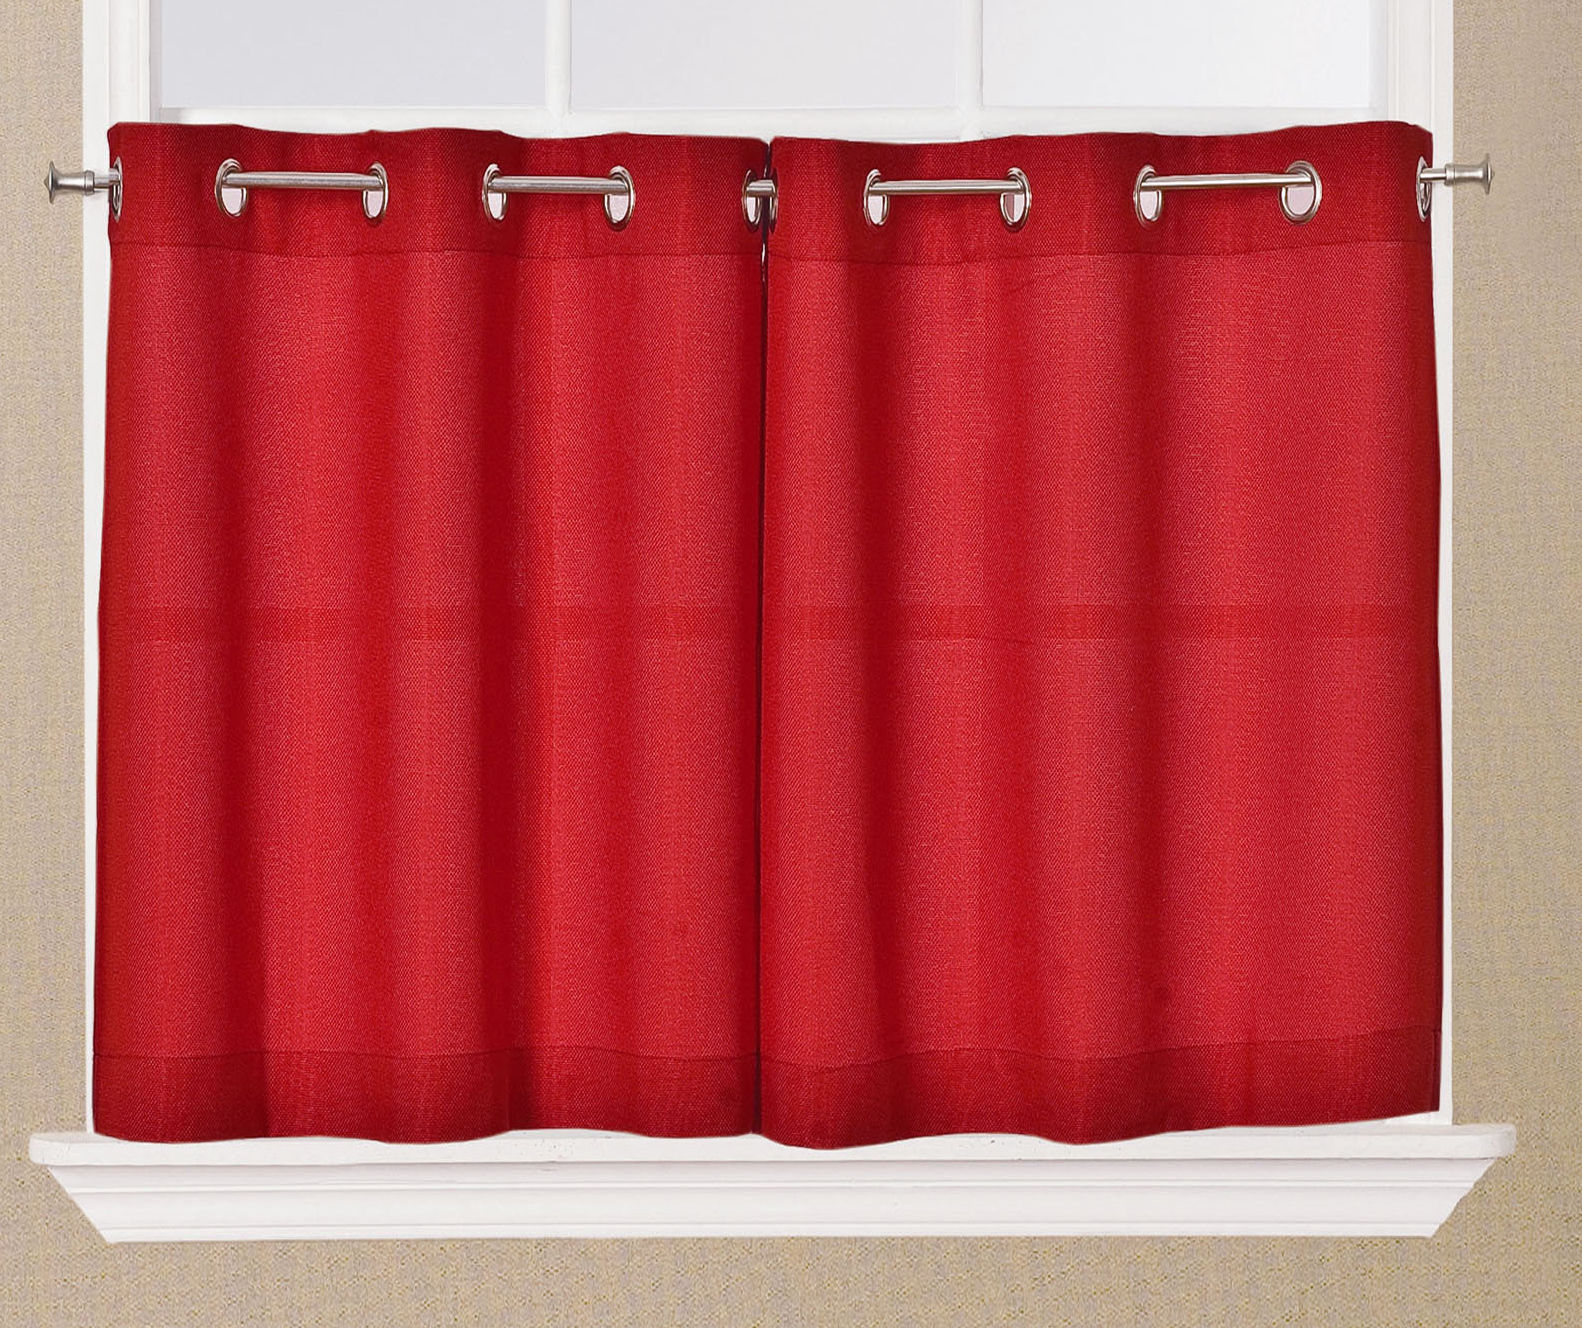 Jackson textured solid red kitchen curtain choice tiers or for Valance curtains for kitchen